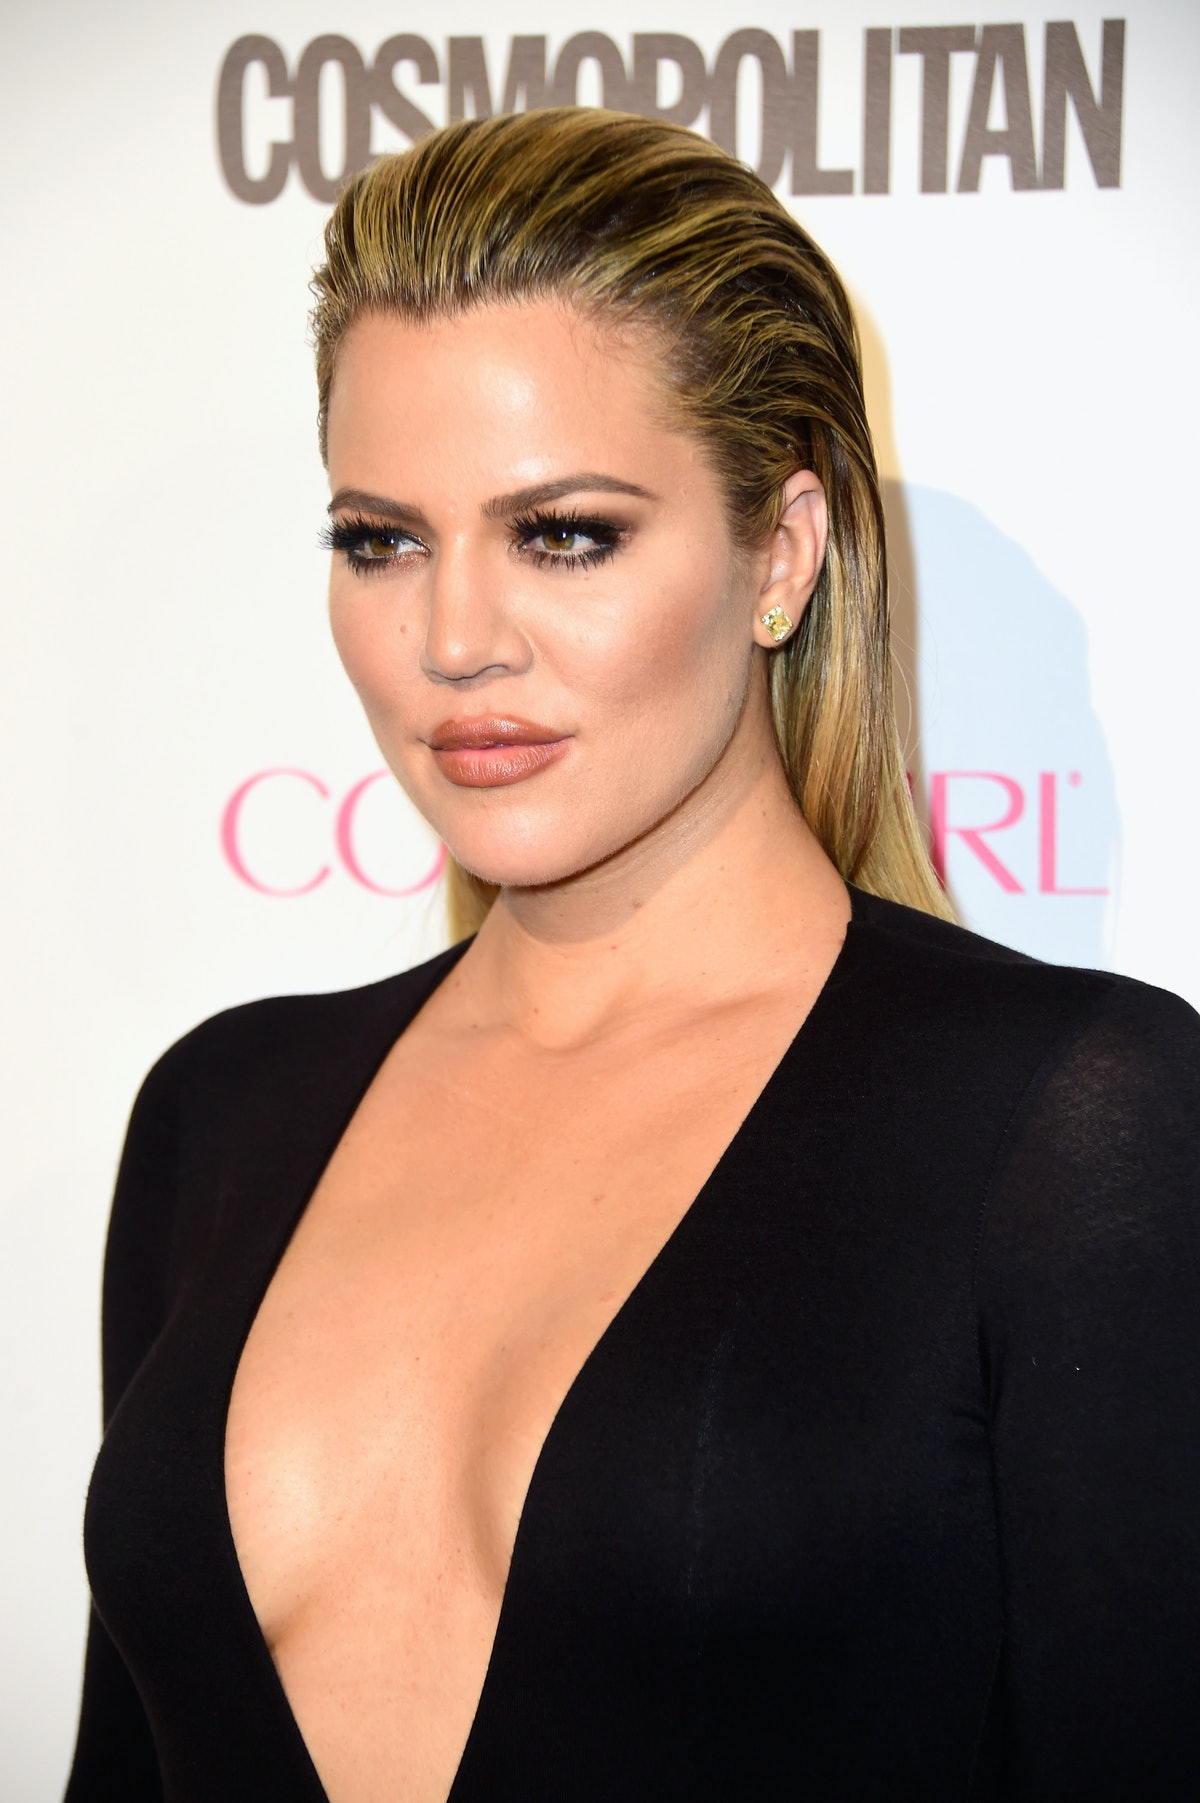 WEST HOLLYWOOD, CA - OCTOBER 12:  TV personality Khloe Kardashian attends Cosmopolitan's 50th Birthday Celebration at Ysabel on October 12, 2015 in West Hollywood, California.  (Photo by Frazer Harrison/Getty Images for Cosmopolitan)